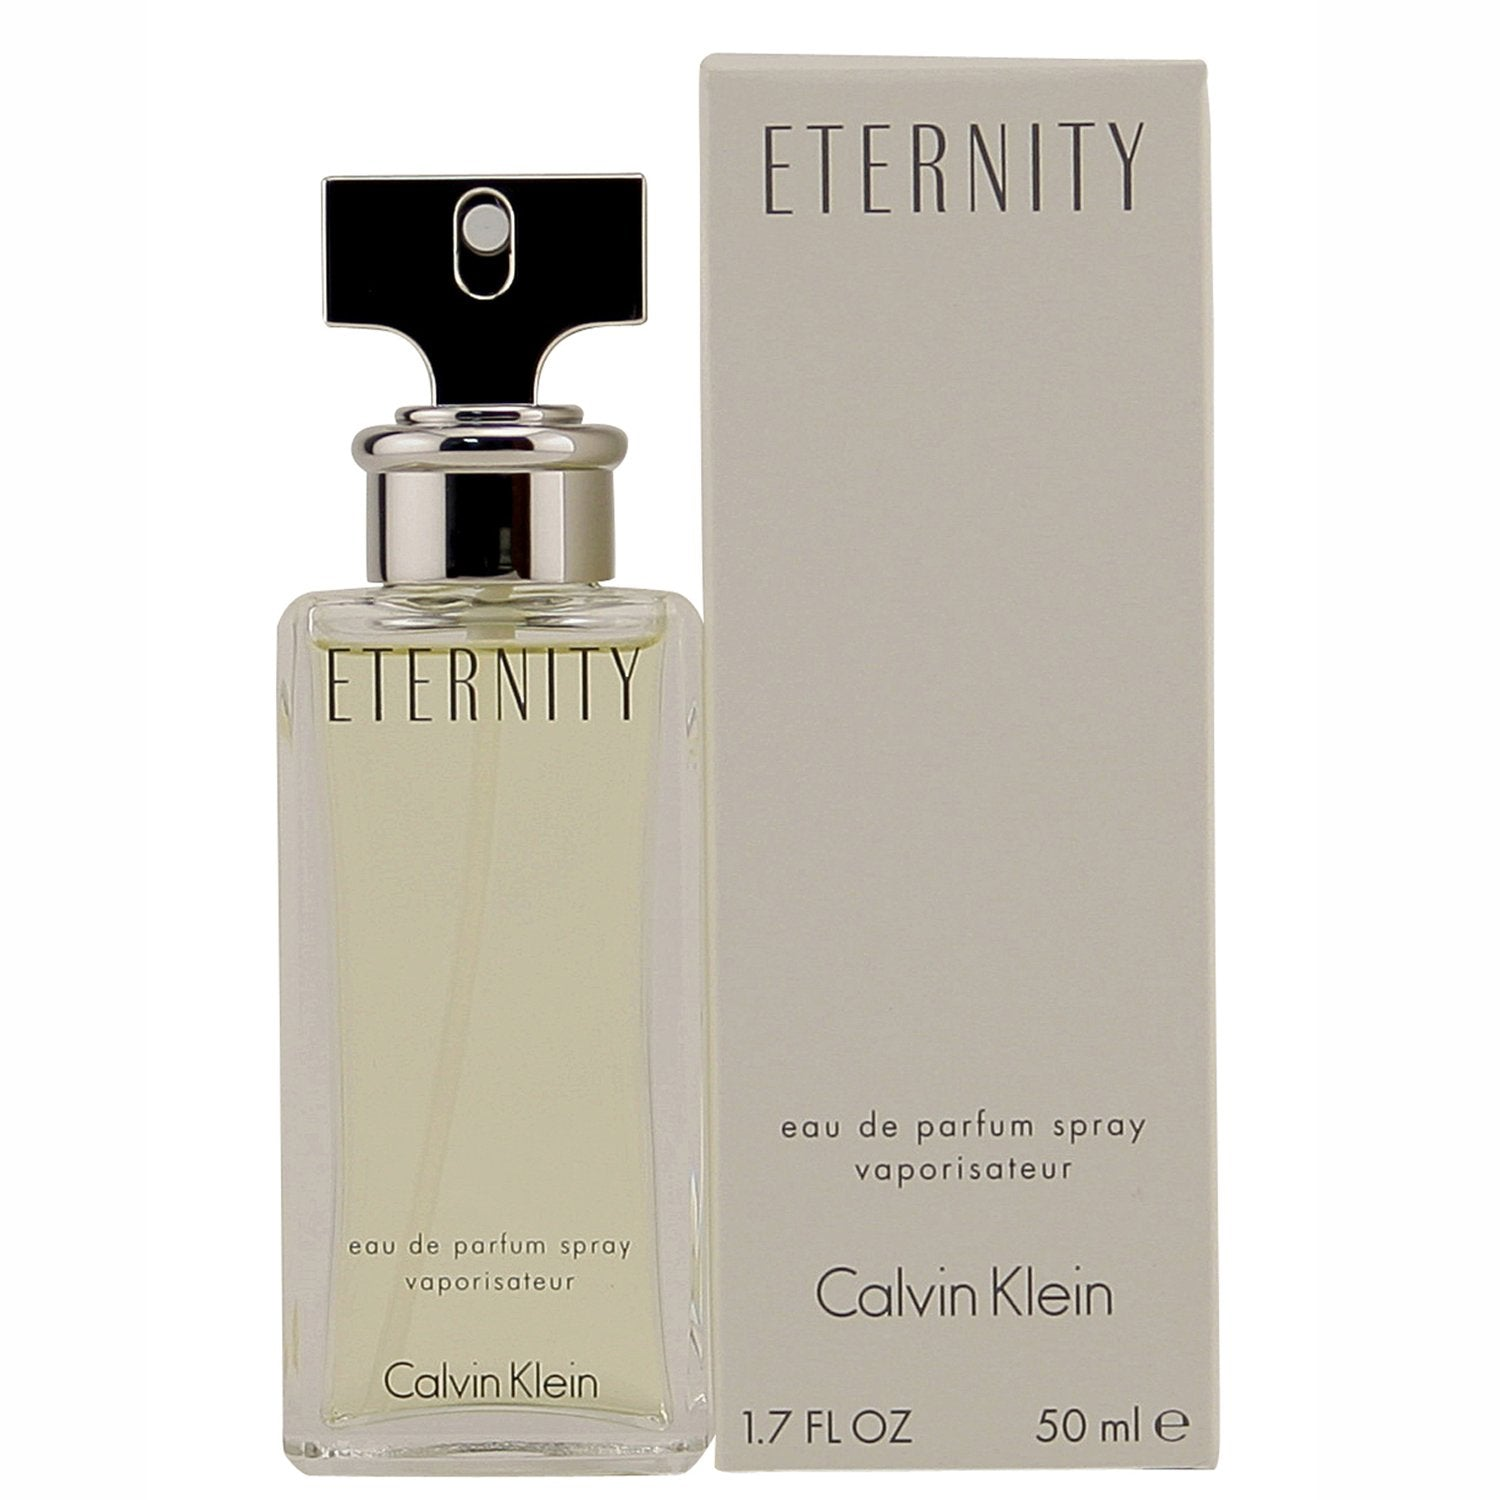 Perfume - ETERNITY FOR WOMEN BY CALVIN KLEIN - EAU DE PARFUM SPRAY